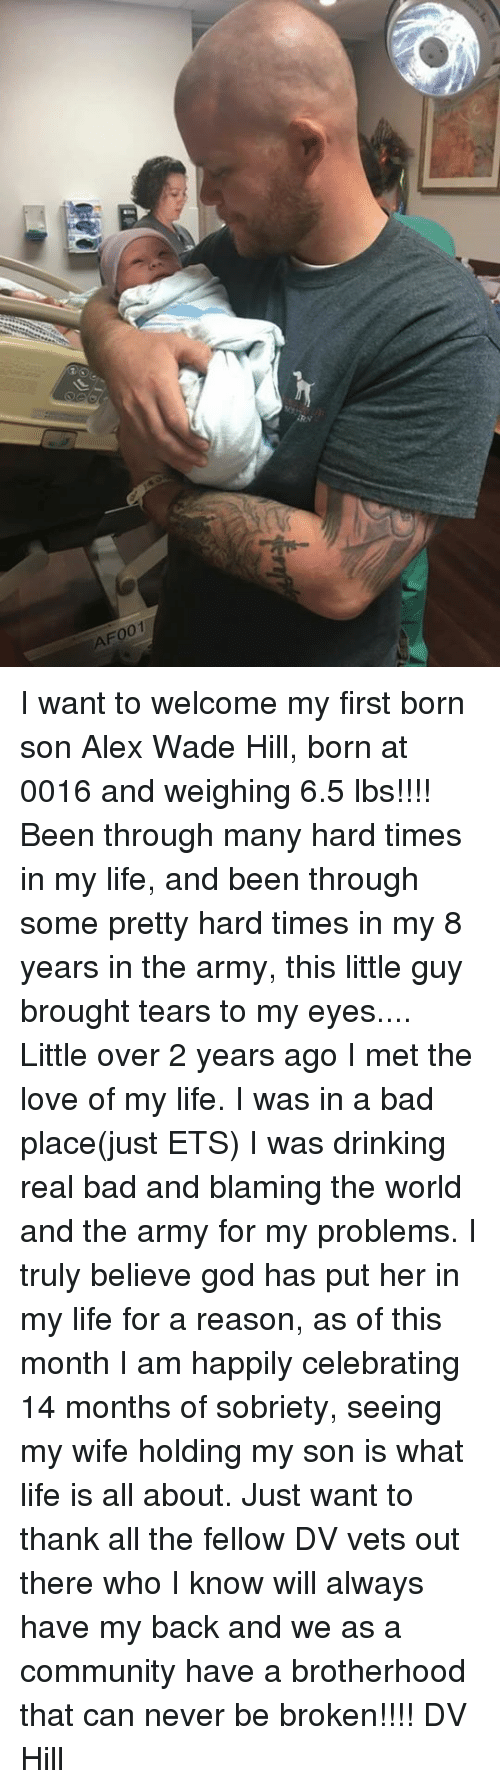 Bad, Community, and Drinking: F001 I want to welcome my first born son Alex Wade Hill, born at 0016 and weighing 6.5 lbs!!!! Been through many hard times in my life, and been through some pretty hard times in my 8 years in the army, this little guy brought tears to my eyes....  Little over 2 years ago I met the love of my life. I was in a bad place(just ETS) I was drinking real bad and blaming the world and the army for my problems. I truly believe god has put her in my life for a reason, as of this month I am happily celebrating 14 months of sobriety, seeing my wife holding my son is what life is all about.   Just want to thank all the fellow DV vets out there who I know will always have my back and we as a community have a  brotherhood  that can never be broken!!!!  DV  Hill